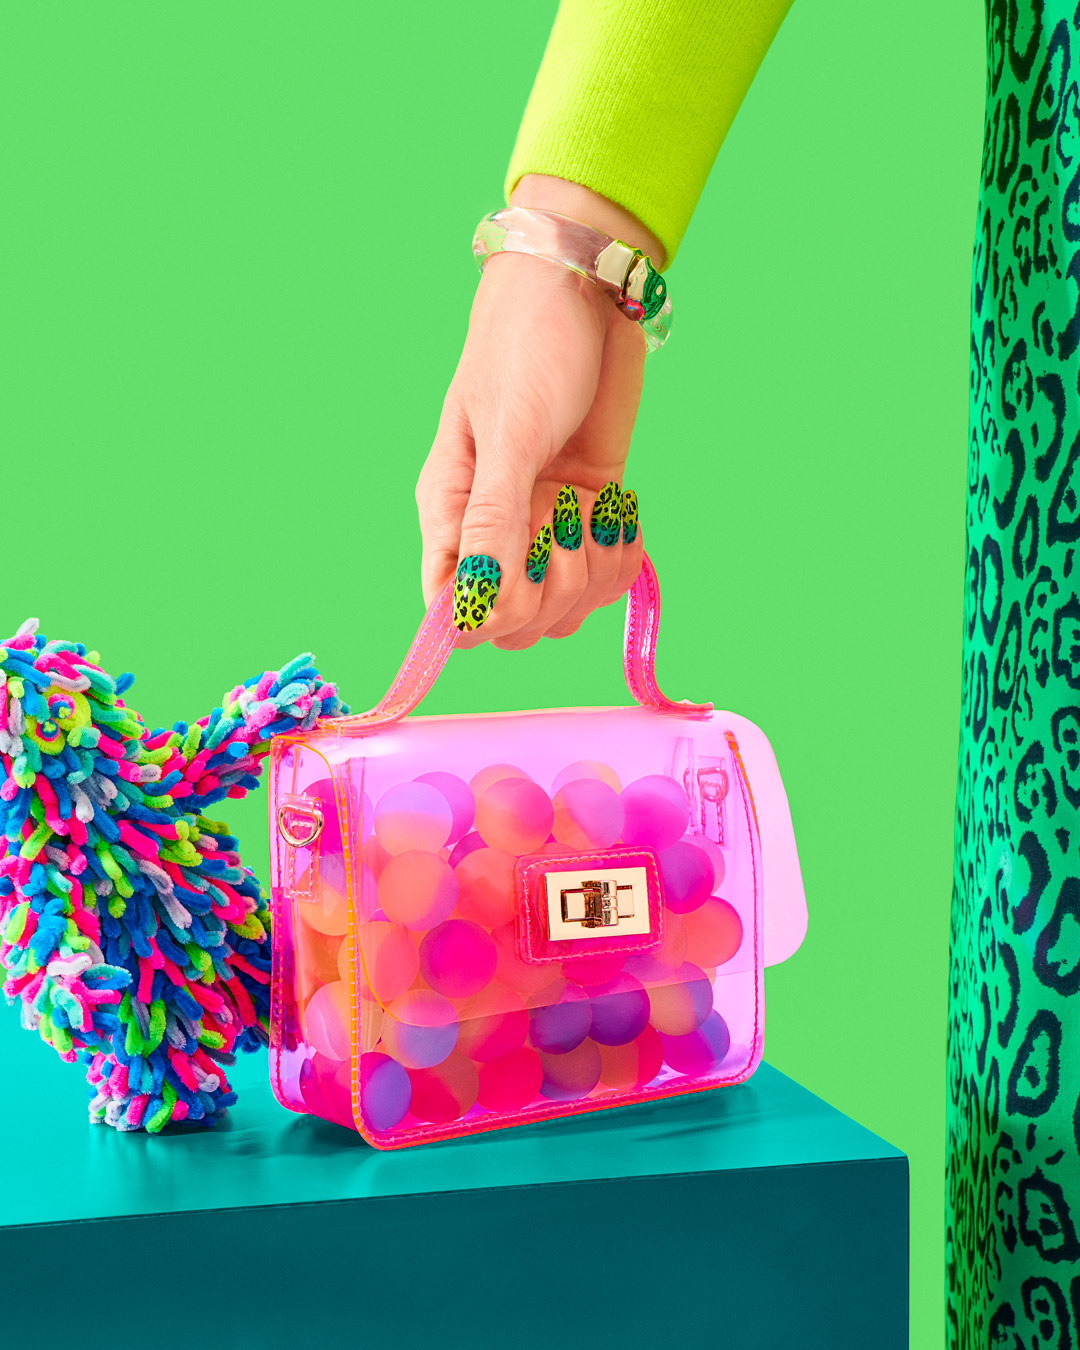 credits: photo - jenna gang, styling - chelsea volpe, nails - natsume chiharu, model - pauline sherrow  description: model wearing a green animal print dress holding a translucent pink handbag filled with colorful balls.